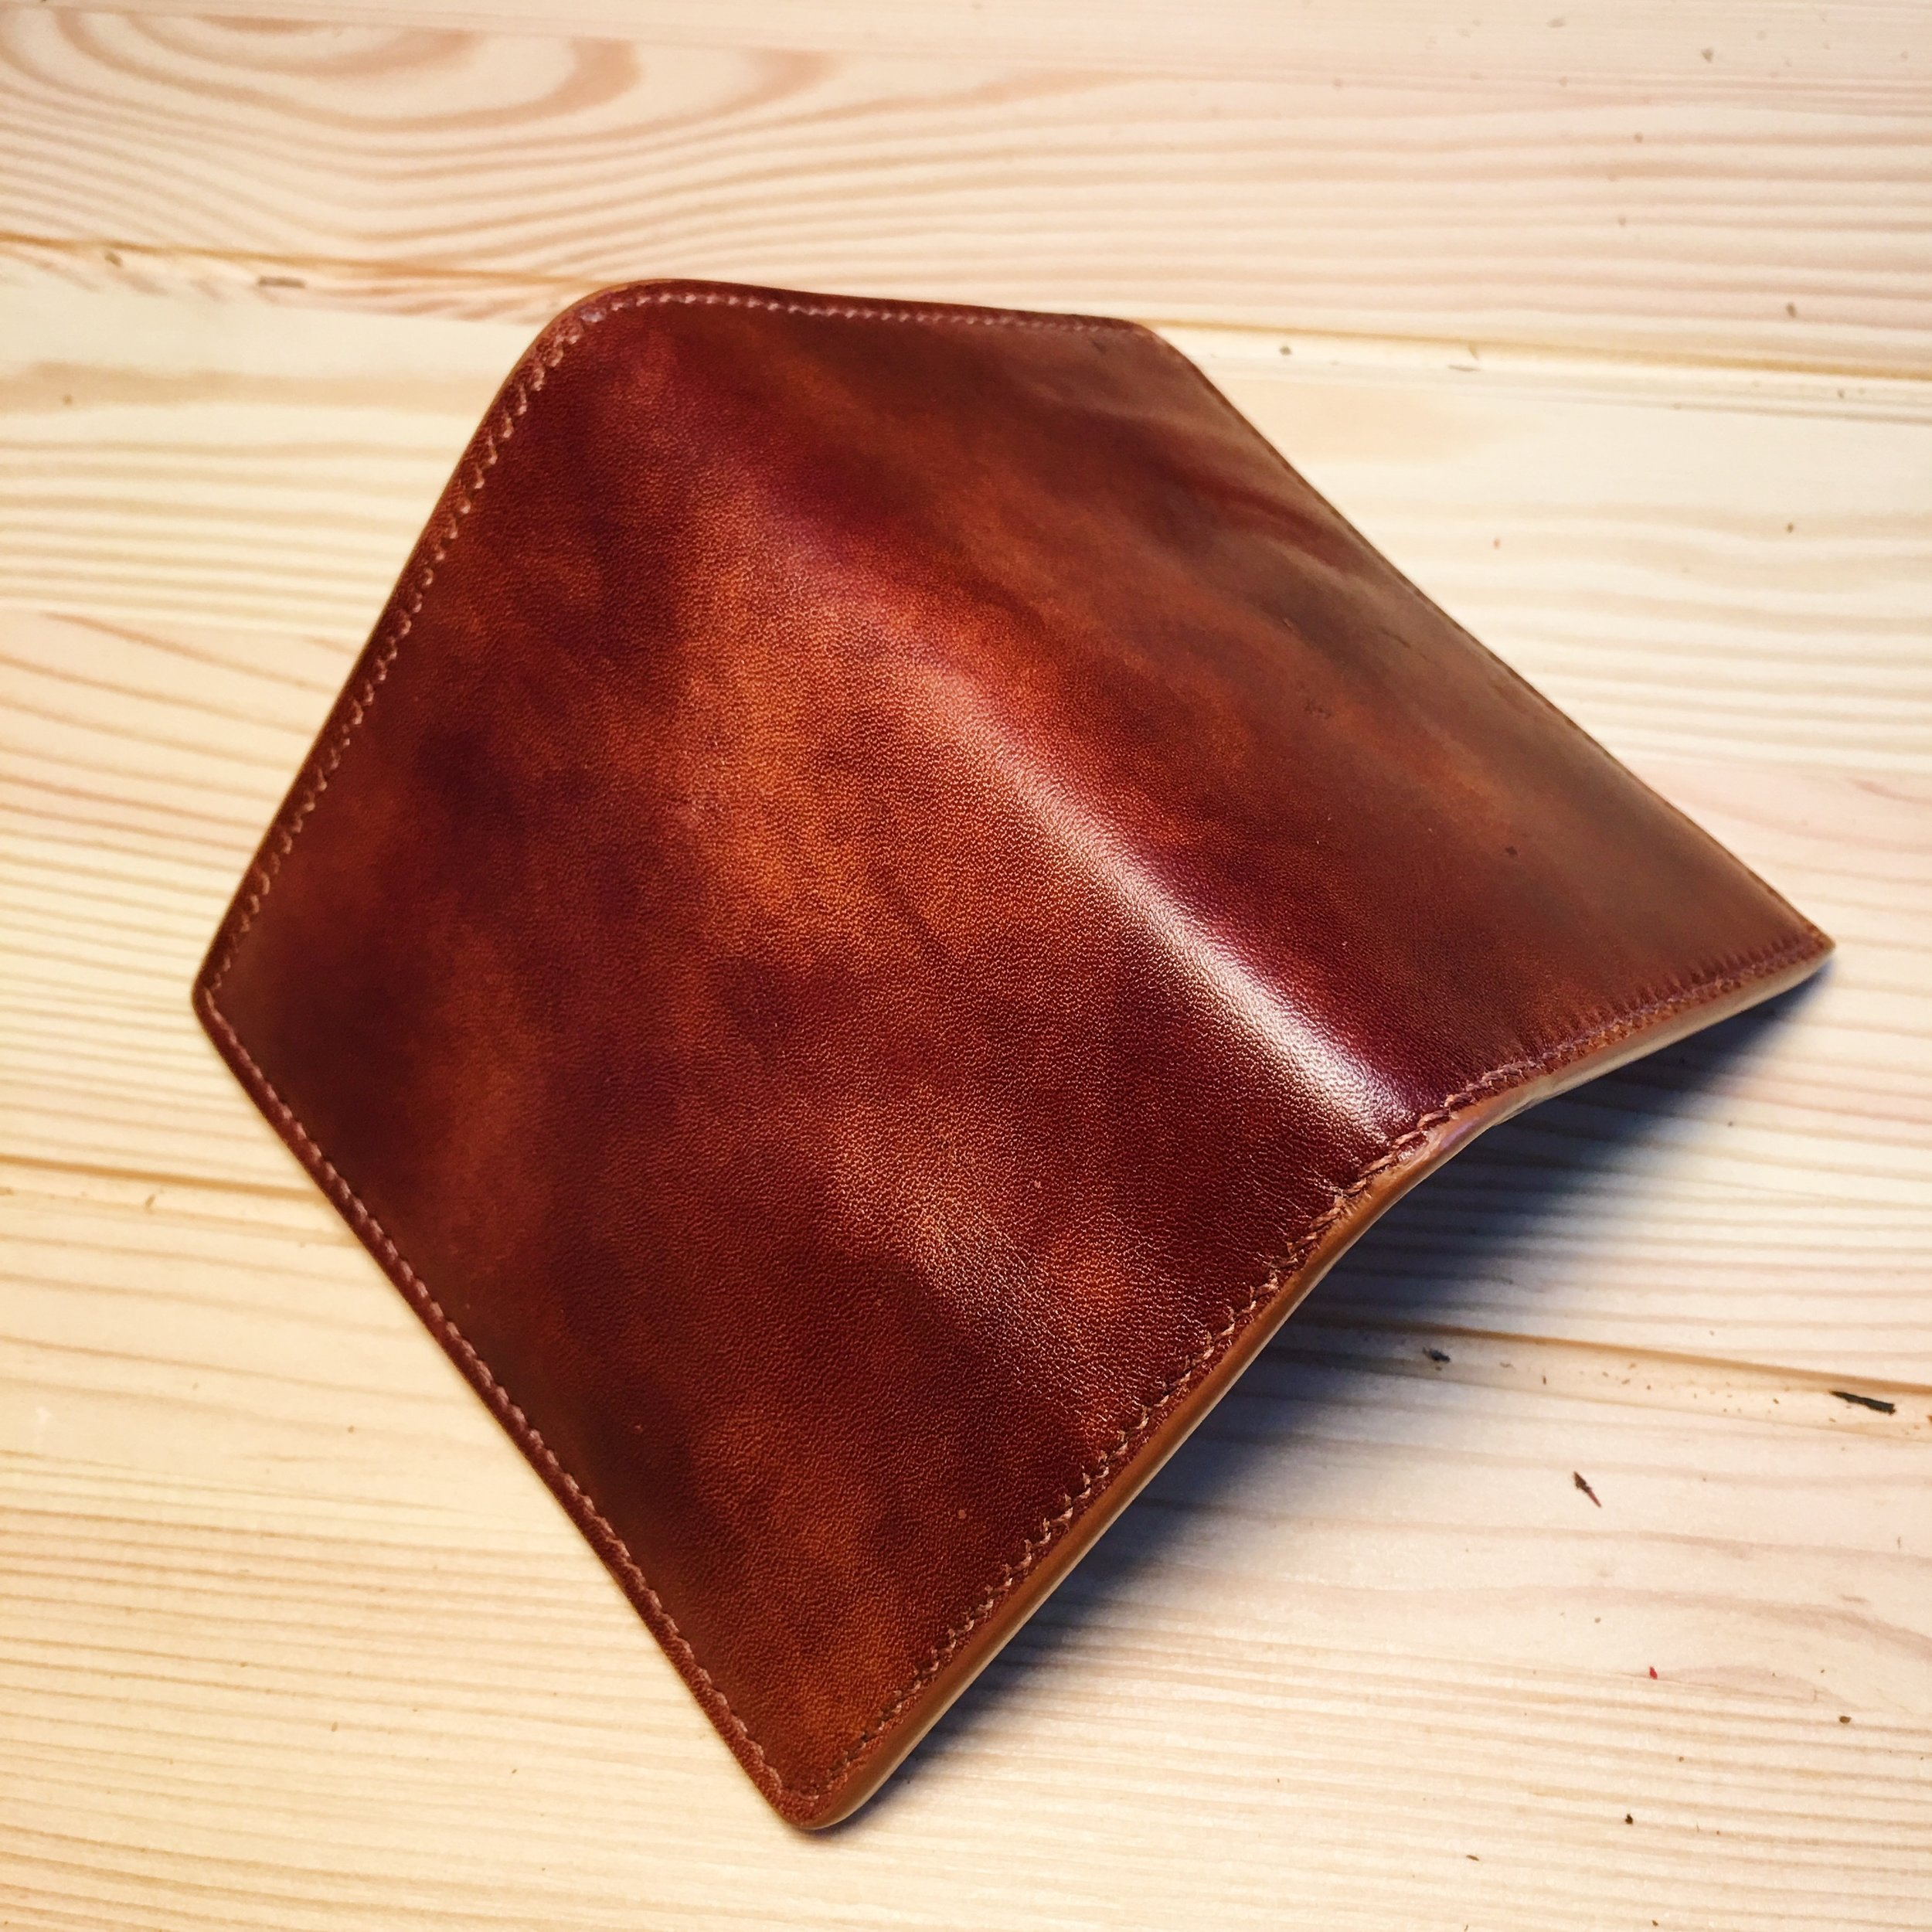 Product made from Museum Calf Leather